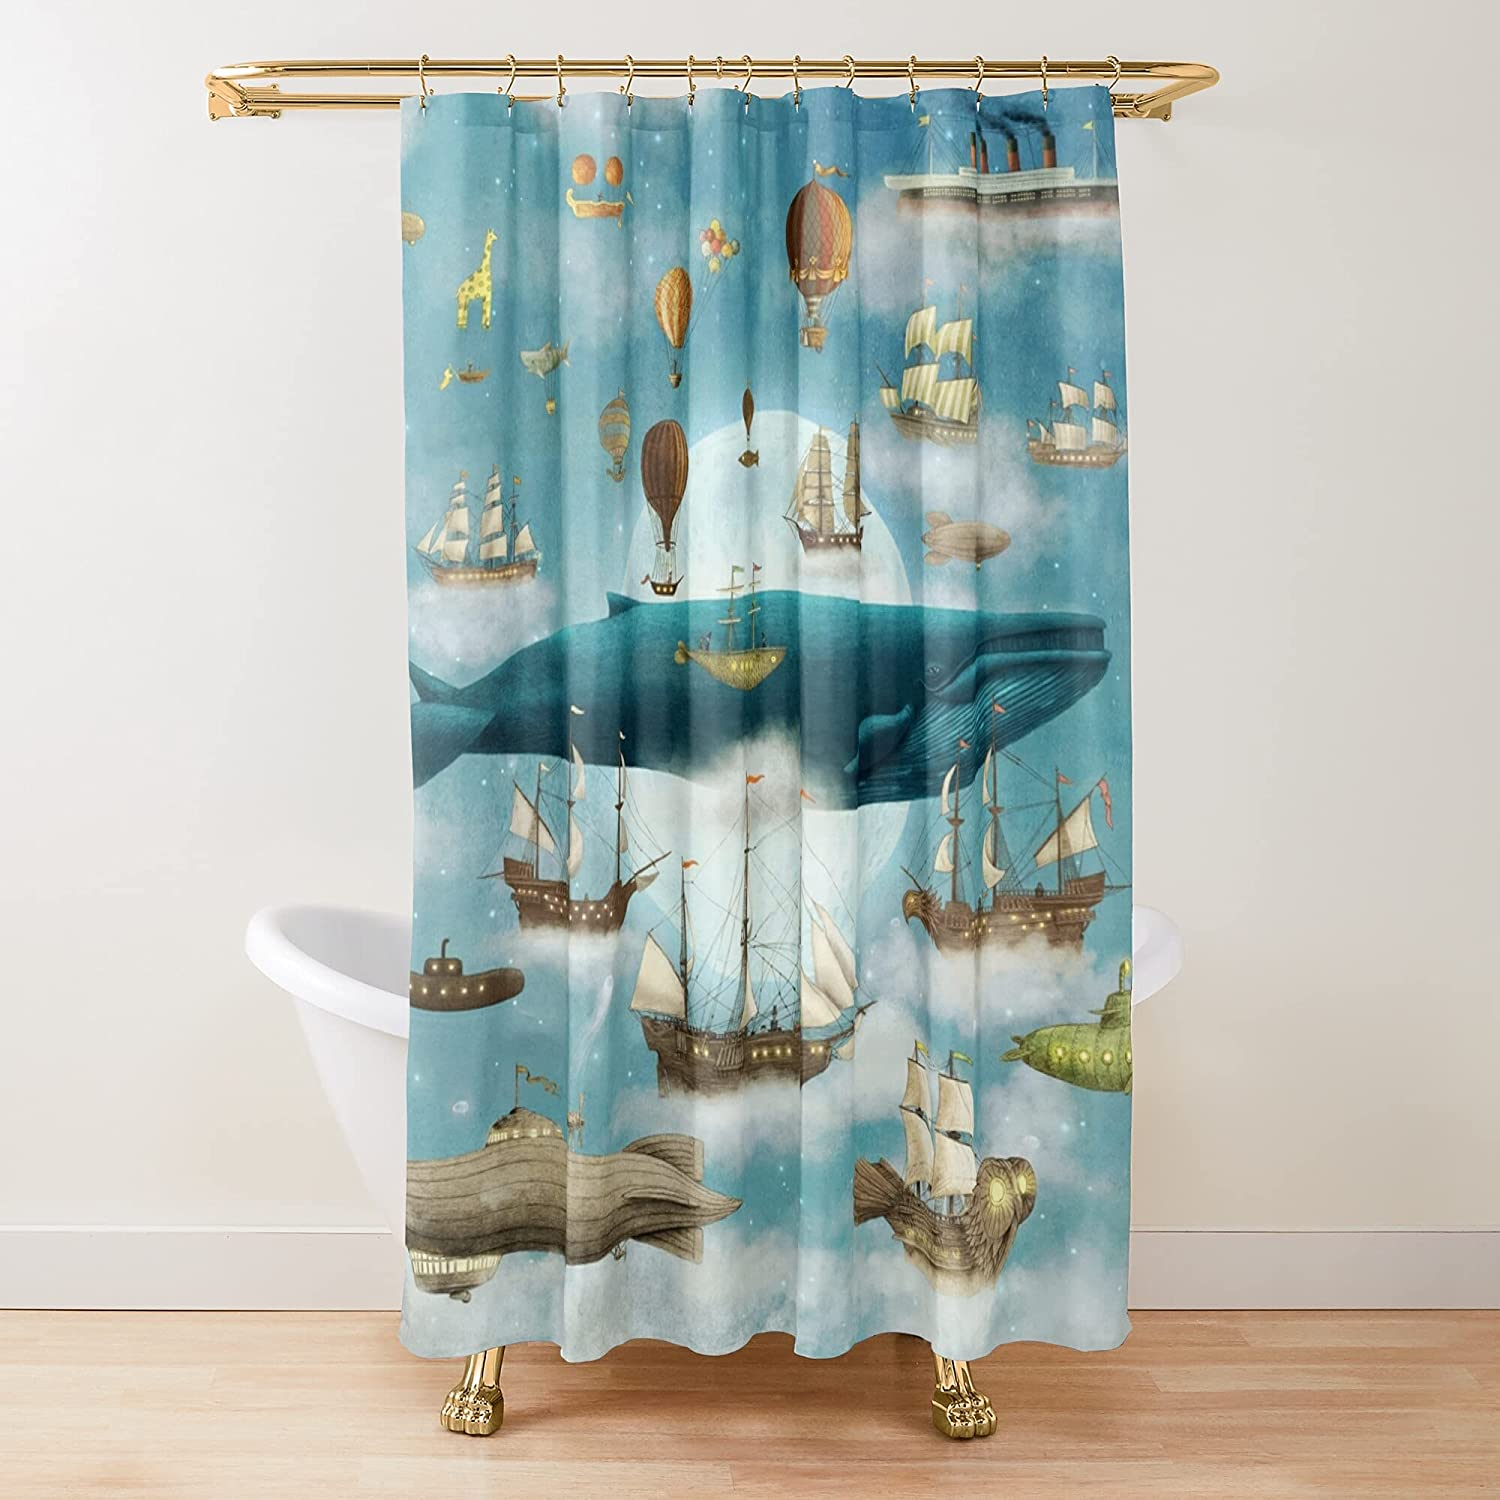 Sale Ocean Meets Sky Book Fabric Printed Customize gift Shower Curtains B